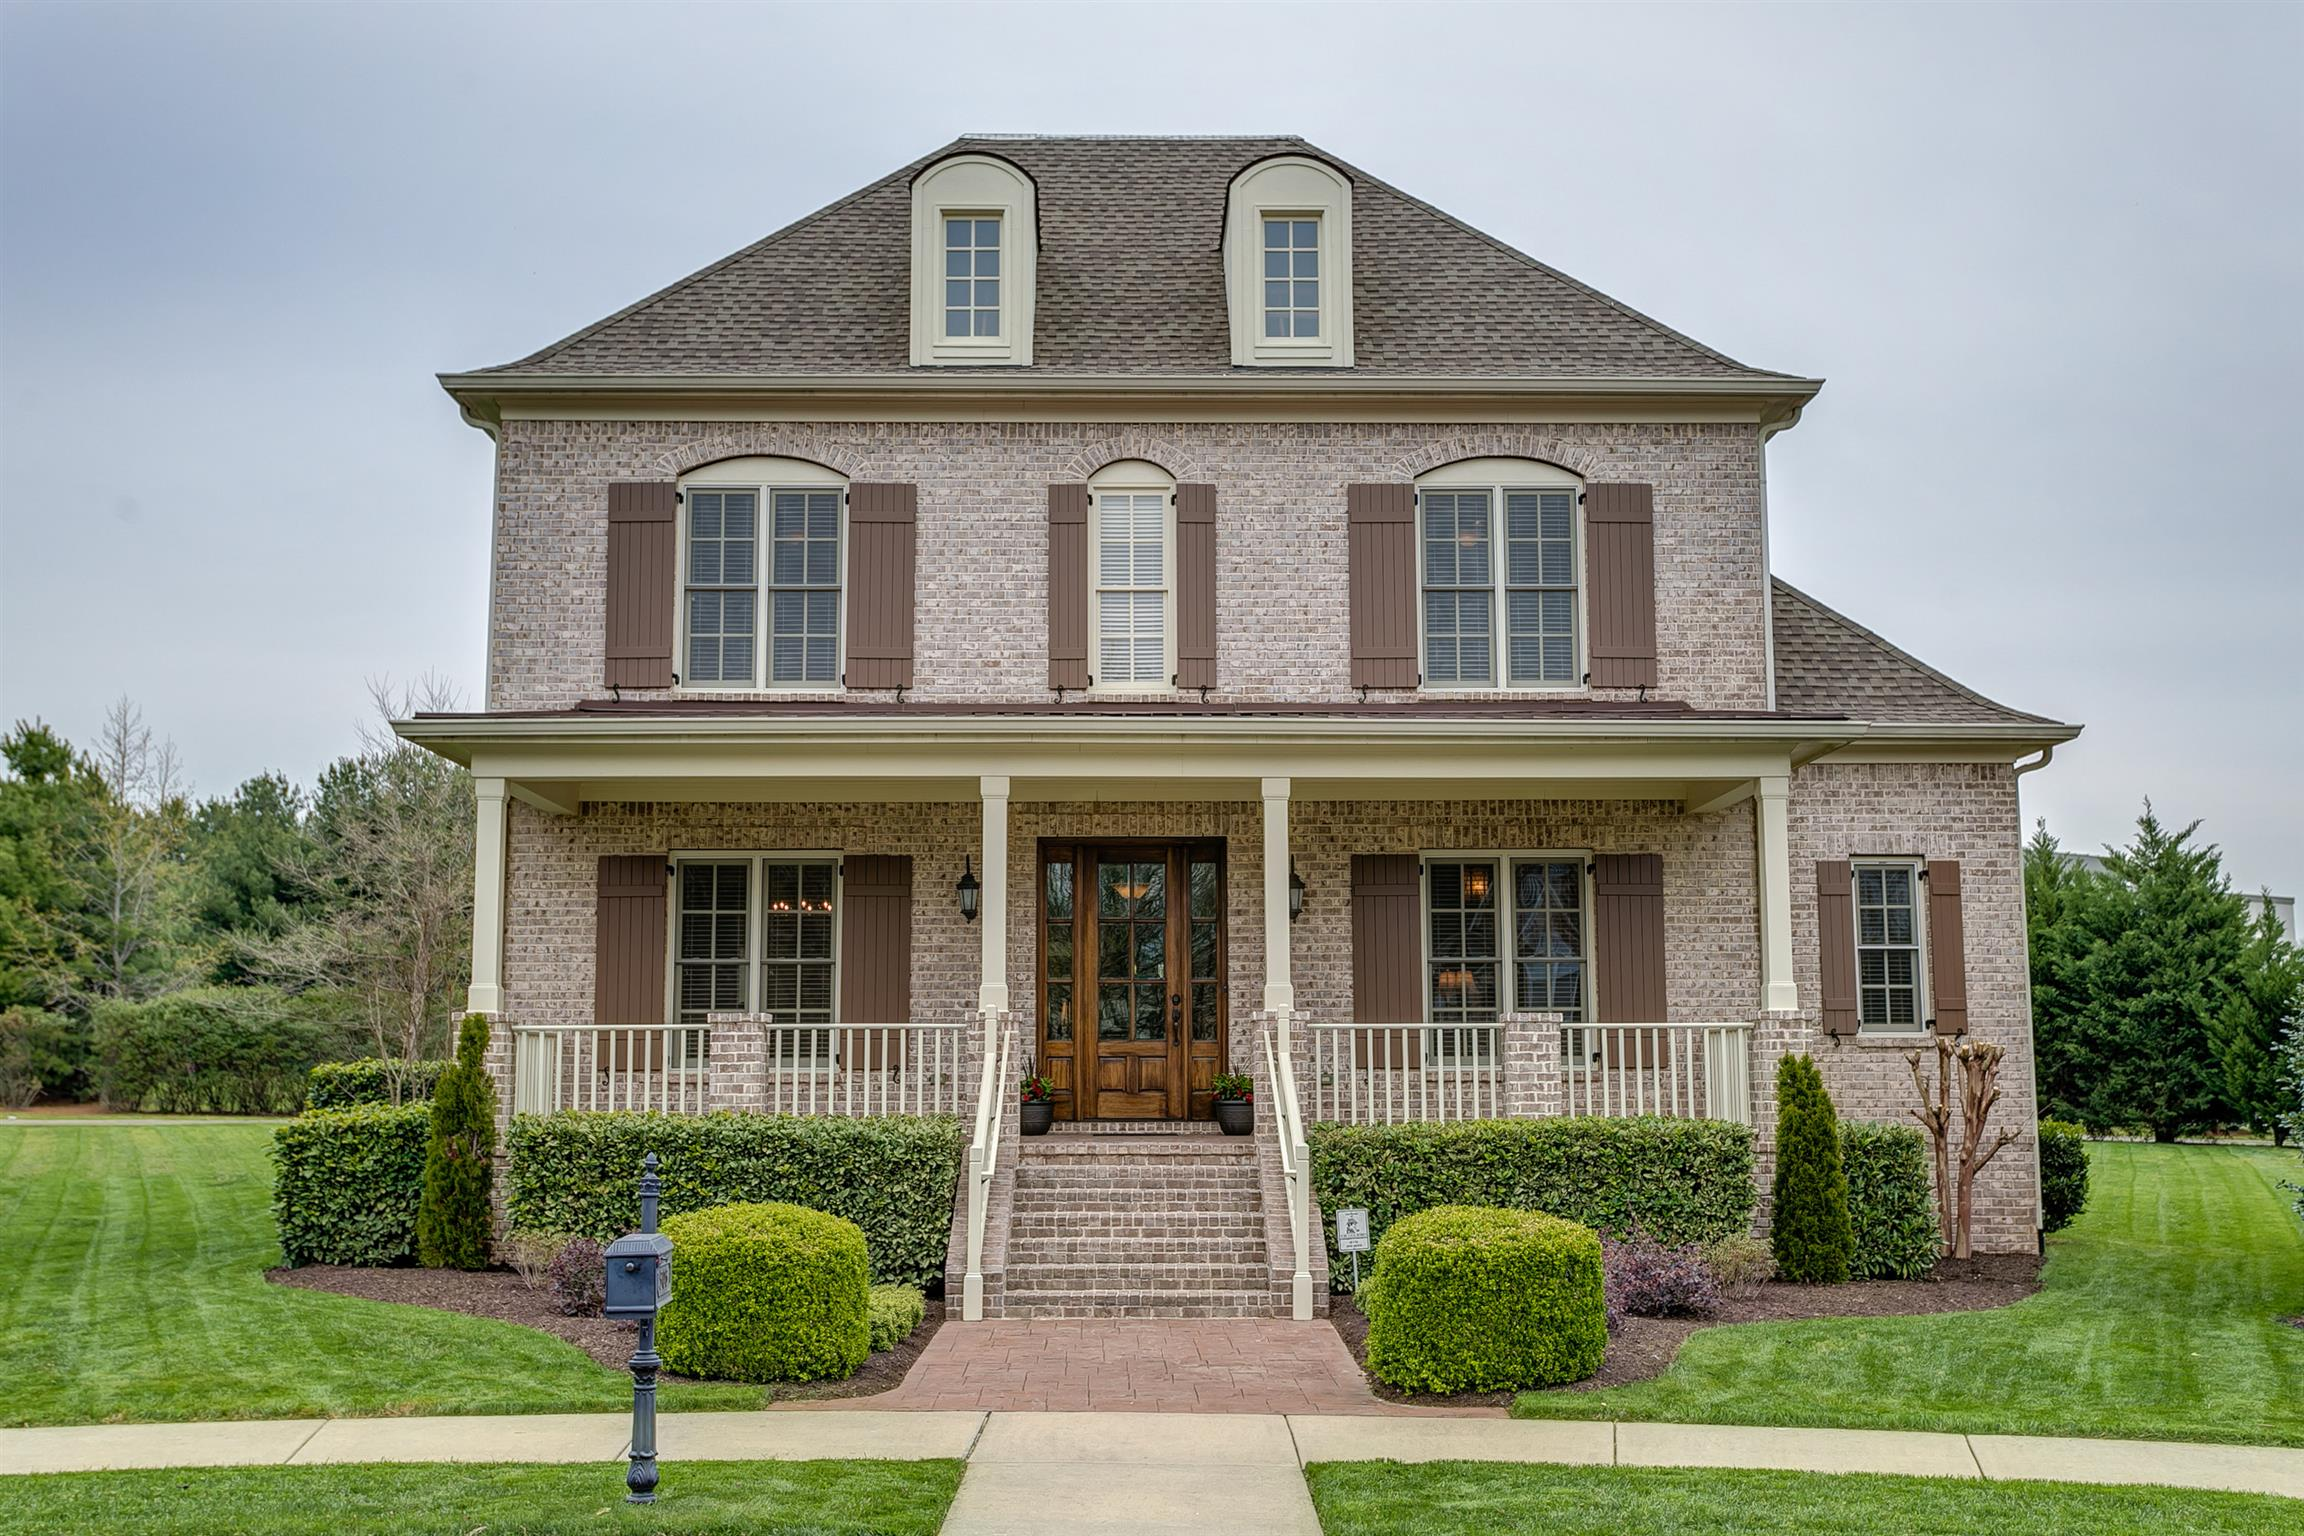 506 Braylon Cir, Franklin, TN 37064 - Franklin, TN real estate listing